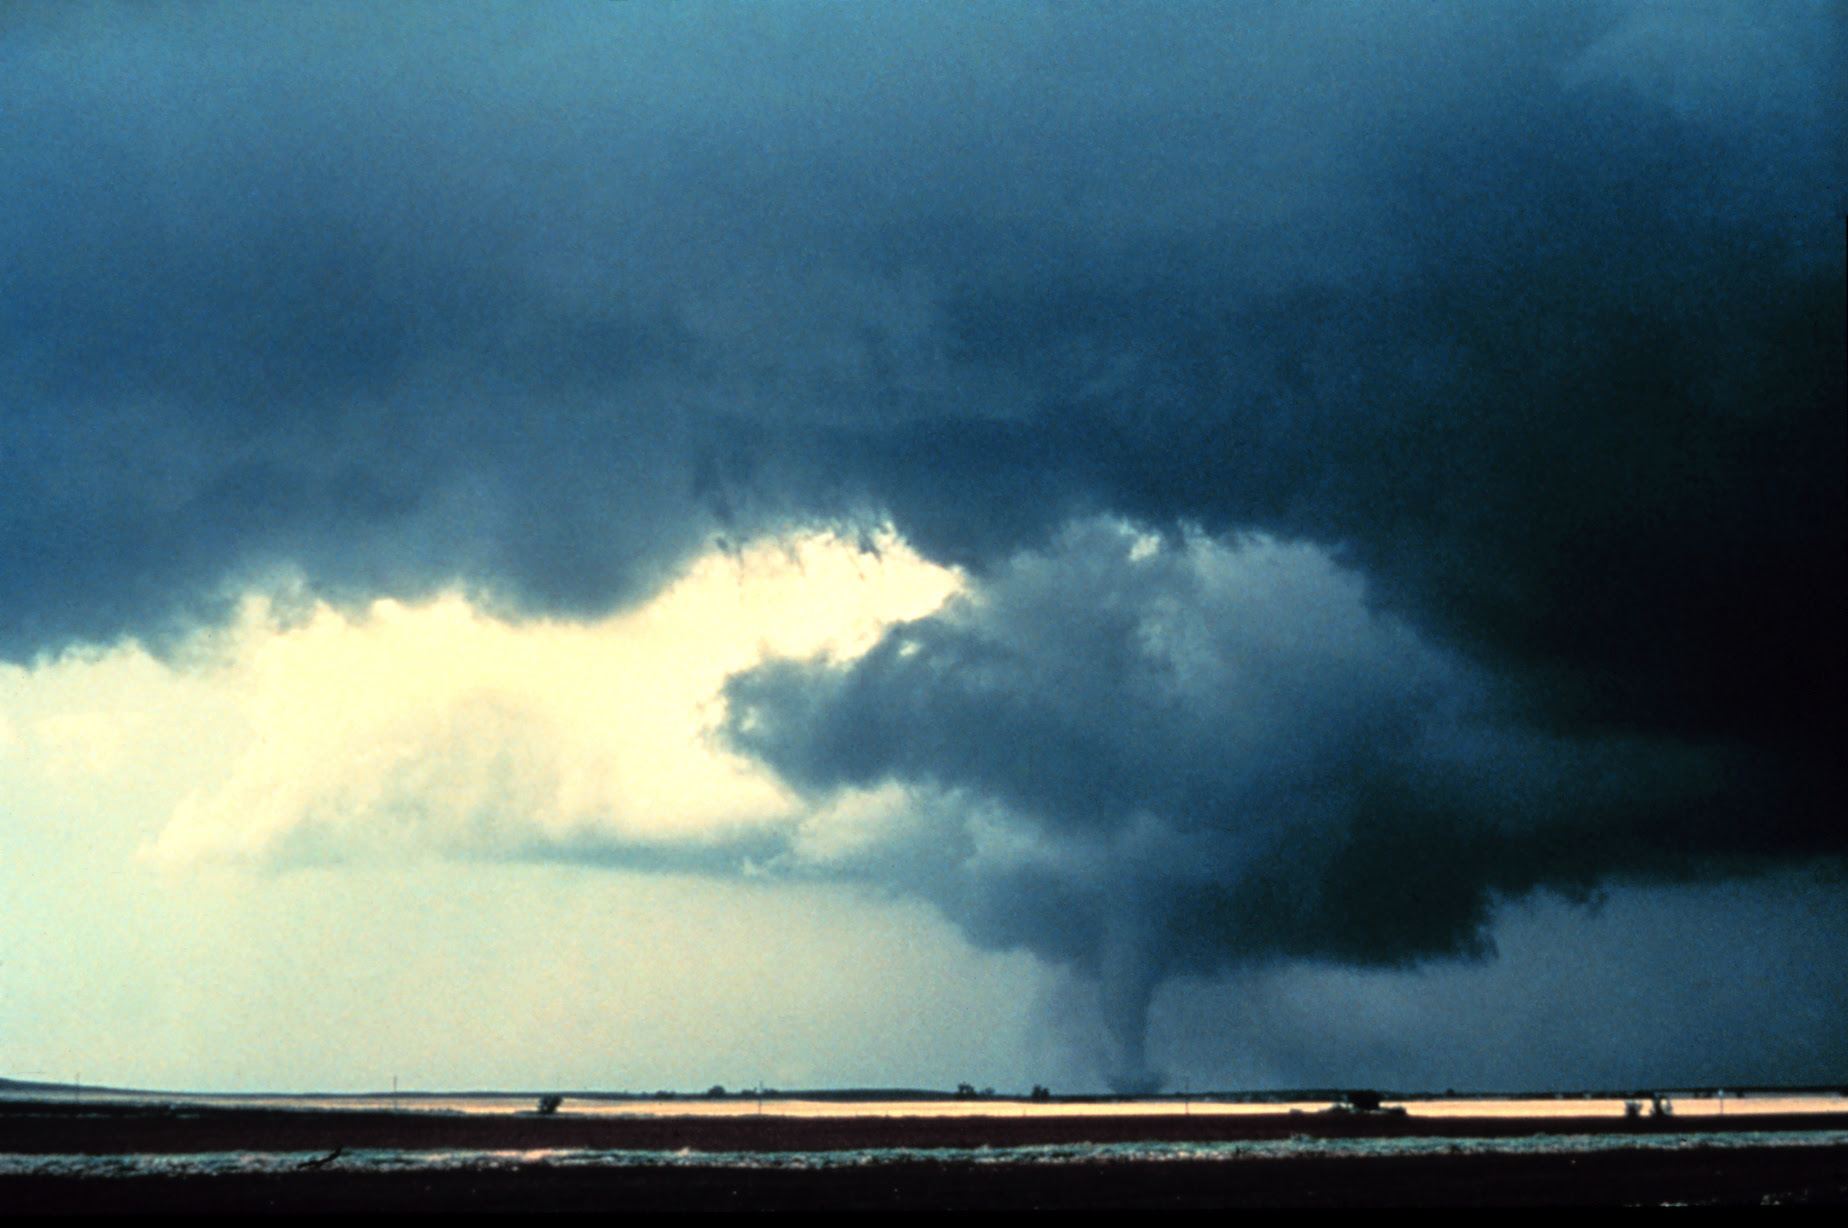 http://upload.wikimedia.org/wikipedia/commons/c/c3/Alfalfa_Tornado_-_NOAA.jpg